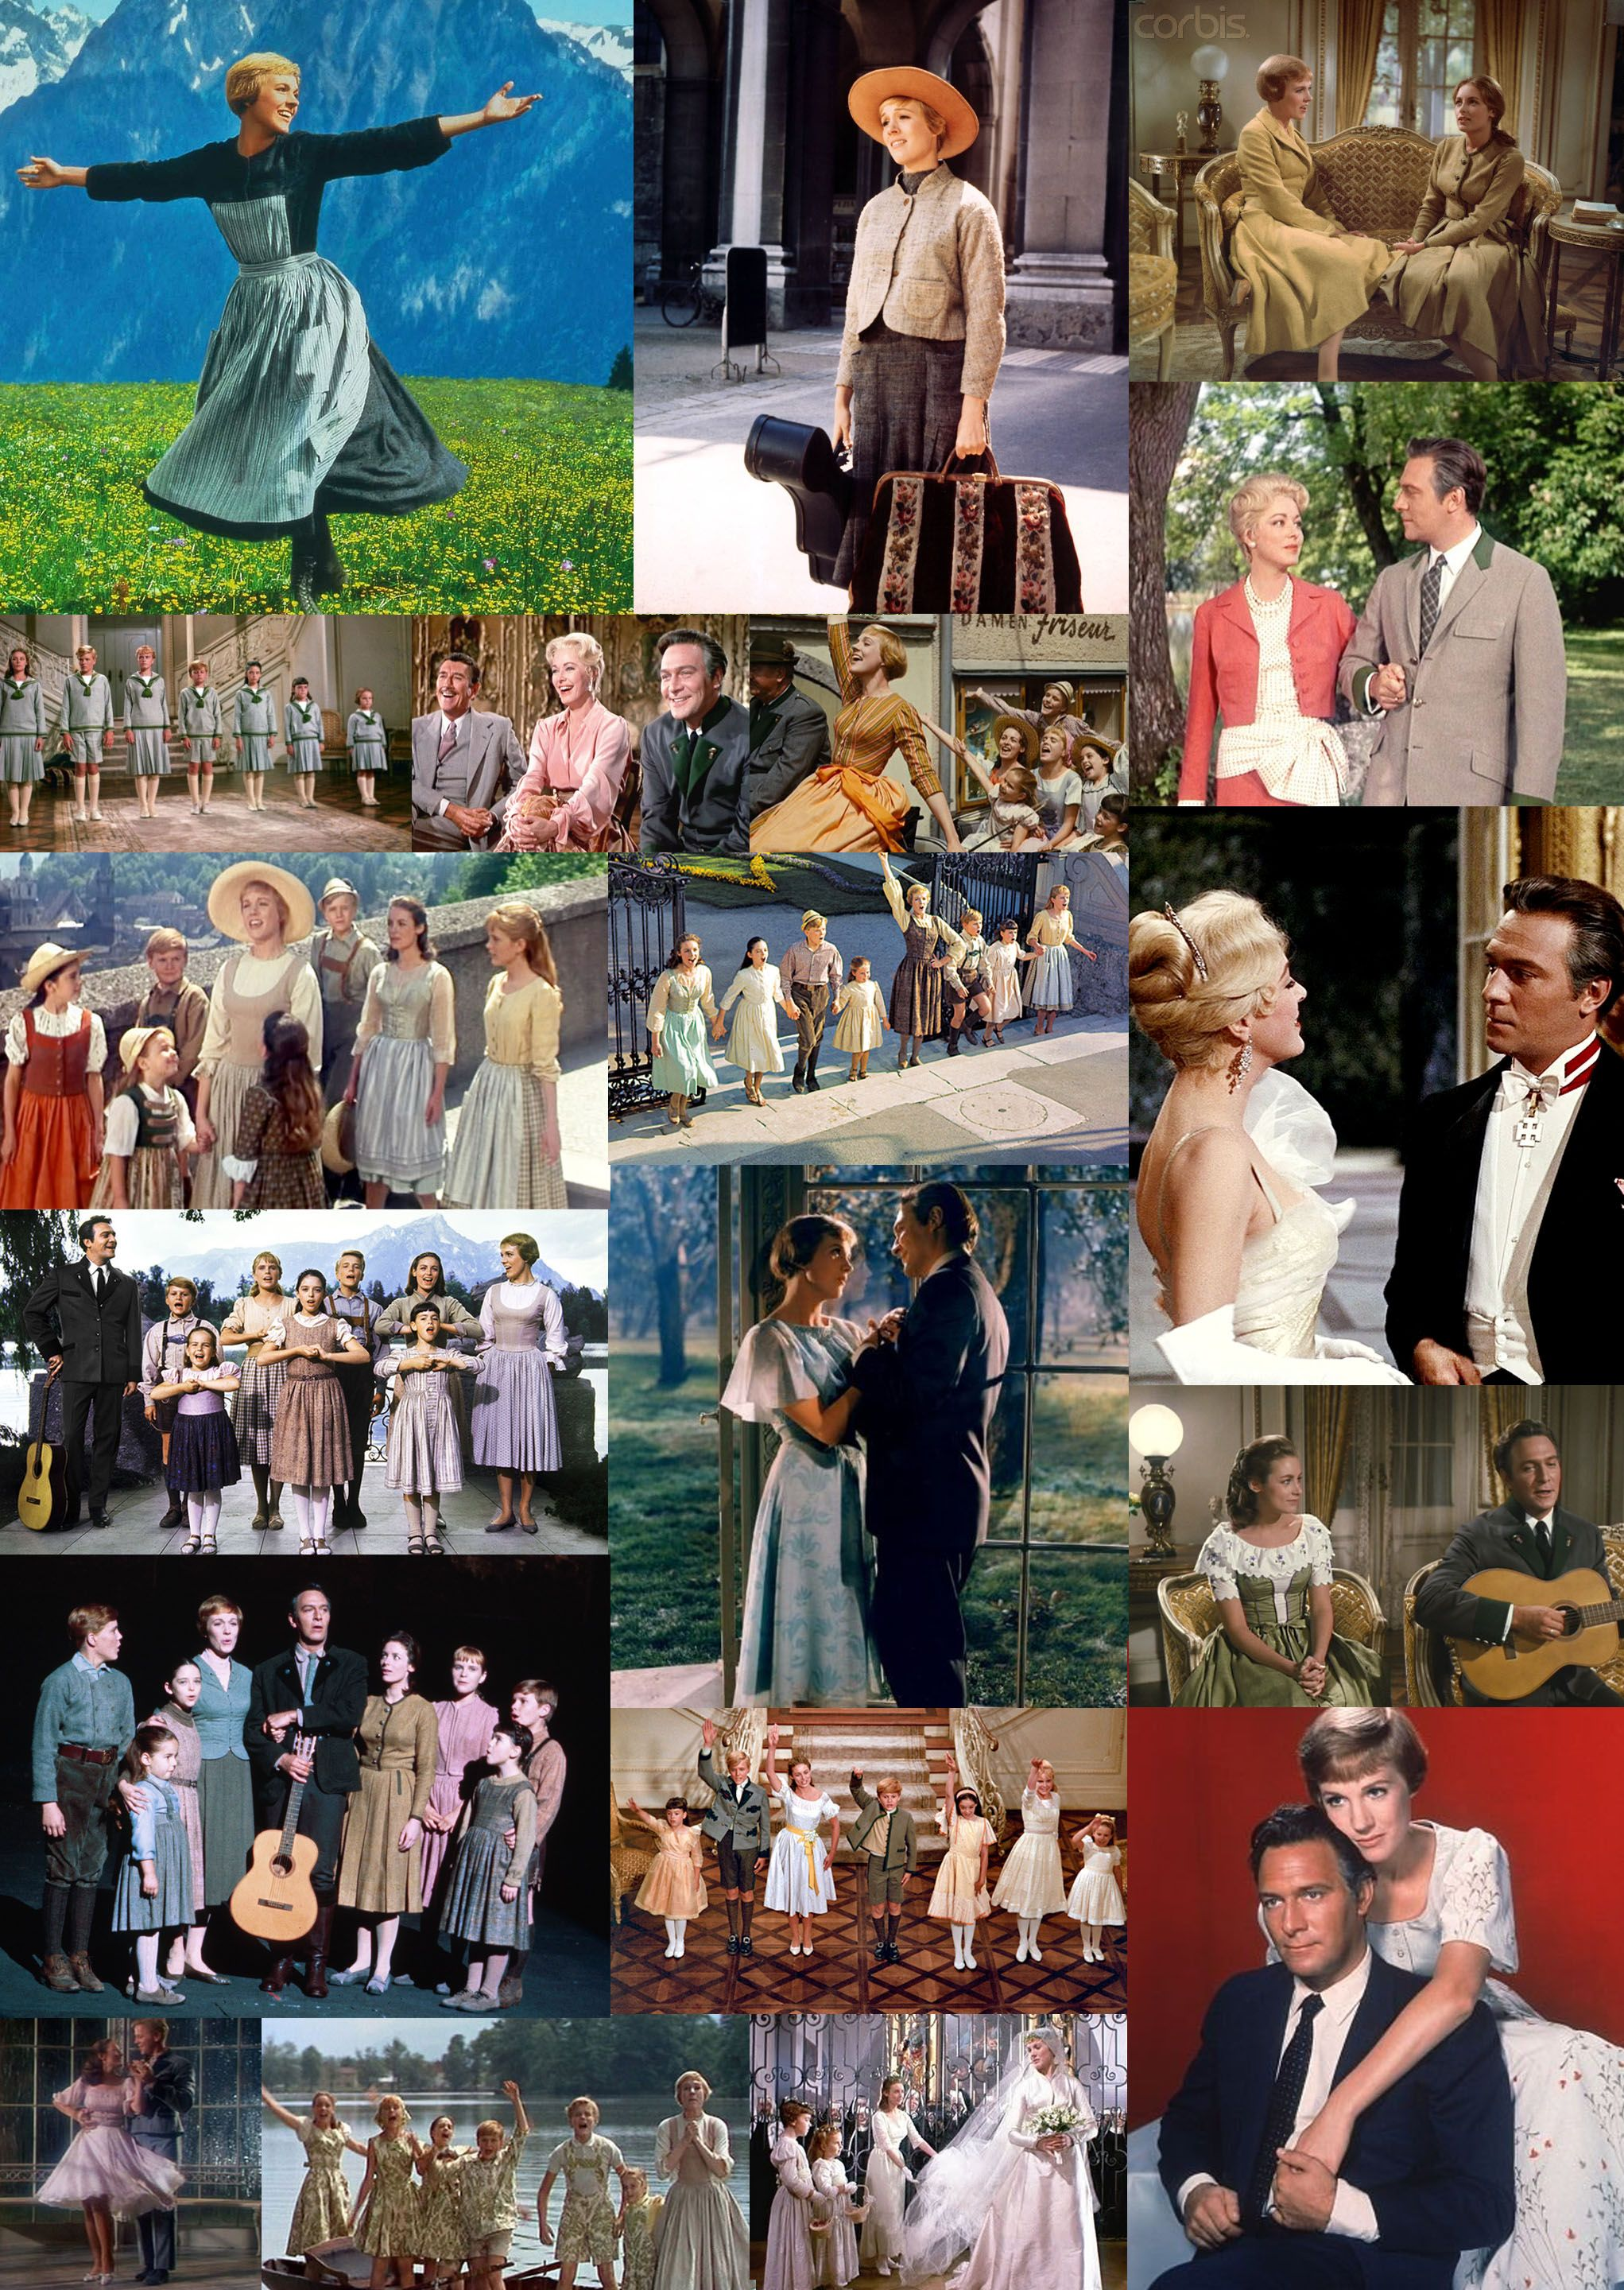 The Sound Of Music 1965 Starring Julie Andrews And Christopher Plummer Sound Of Music Musical Movies Music Love